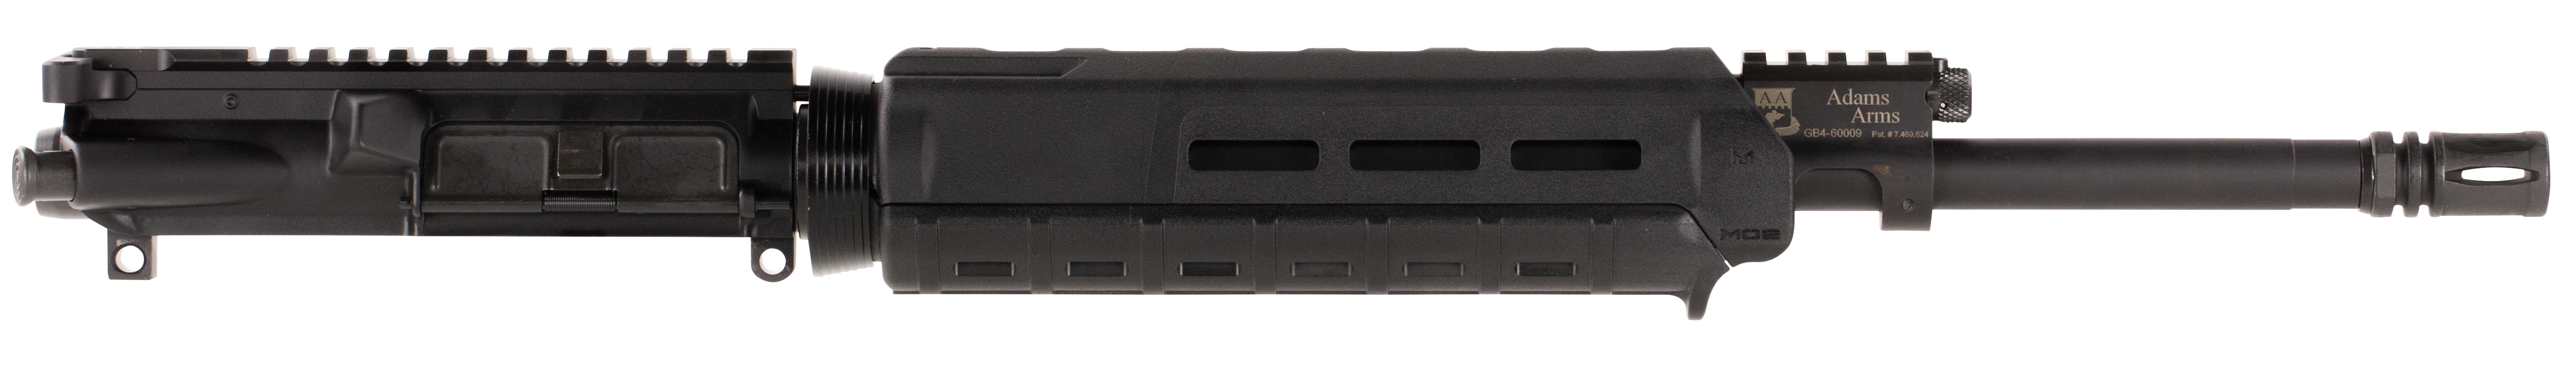 Adams Arms FGAA01235 P1 223 Remington/5.56 NATO 16